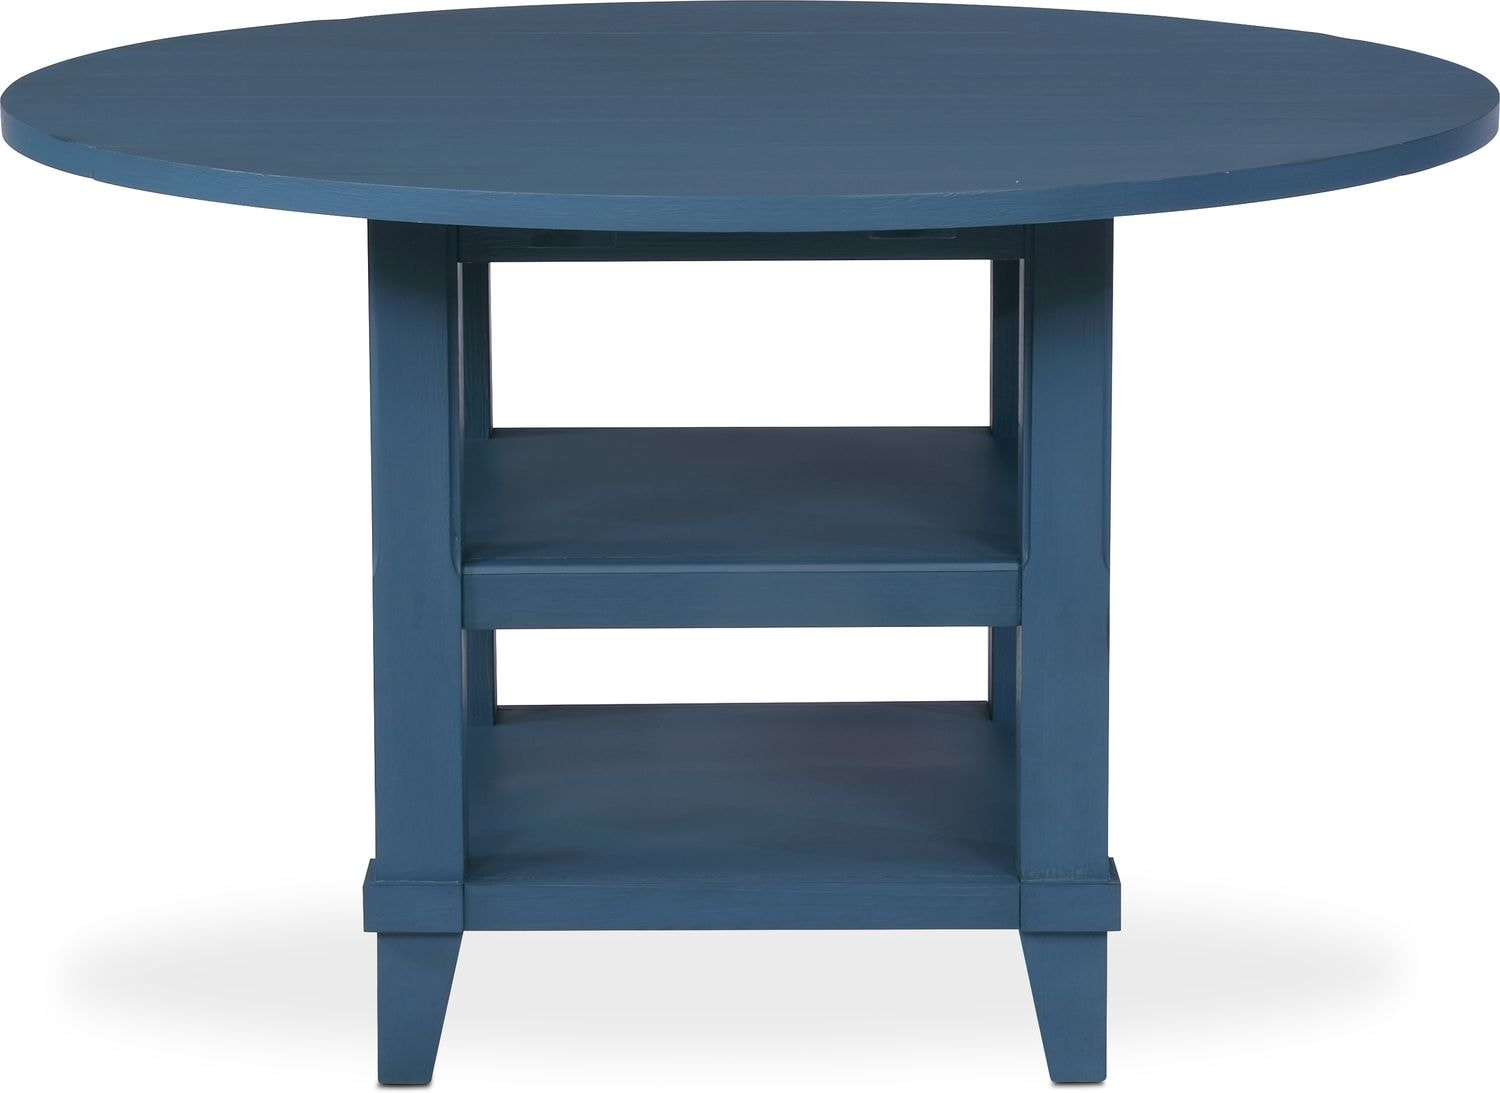 New Haven Round Drop-Leaf Dining Table - Blue   Value City Furniture ...